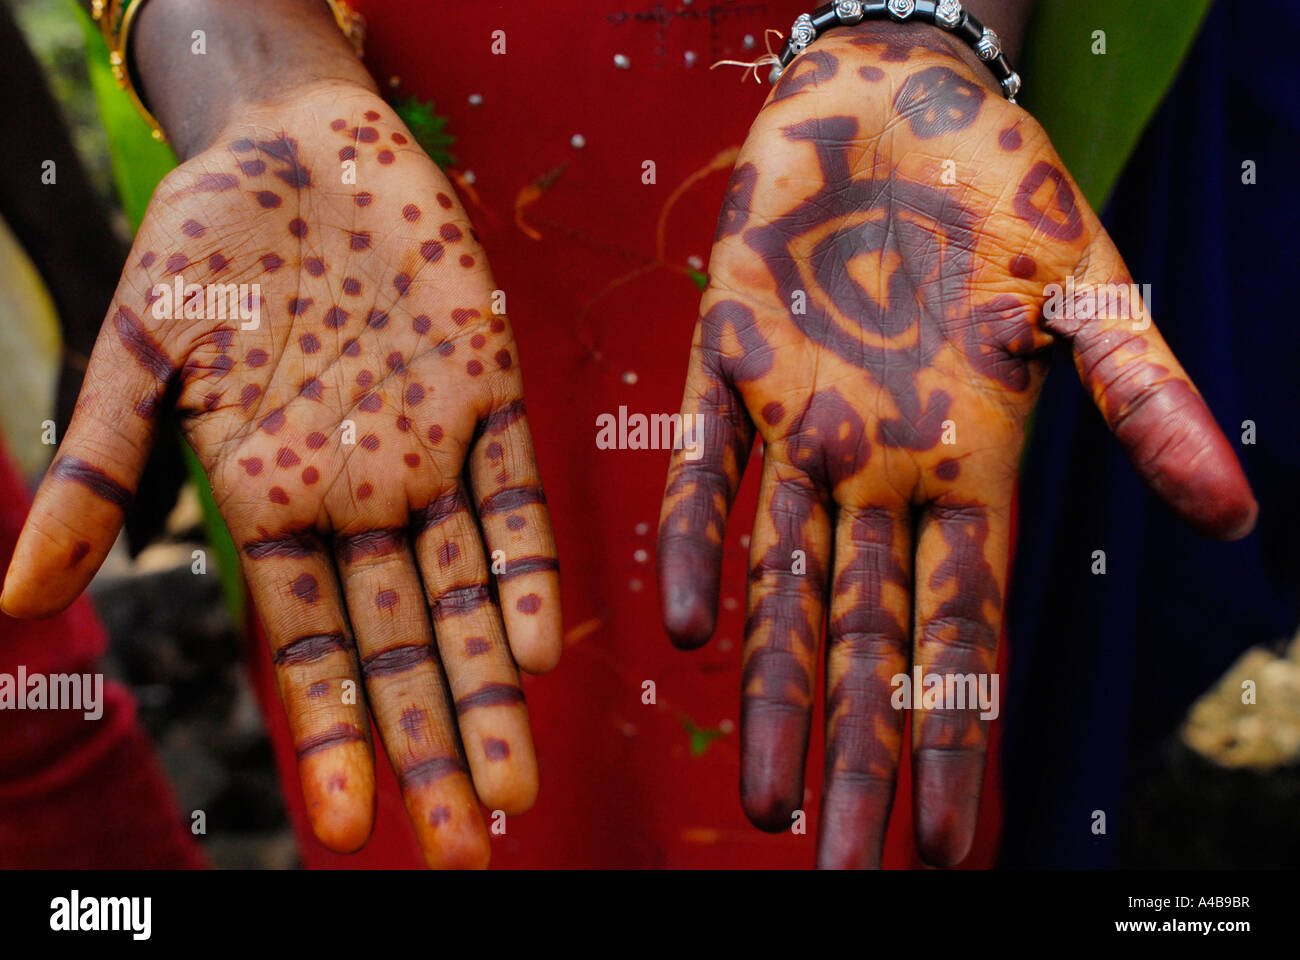 Mehndi Designs And S : Henna designs stock photos & images alamy